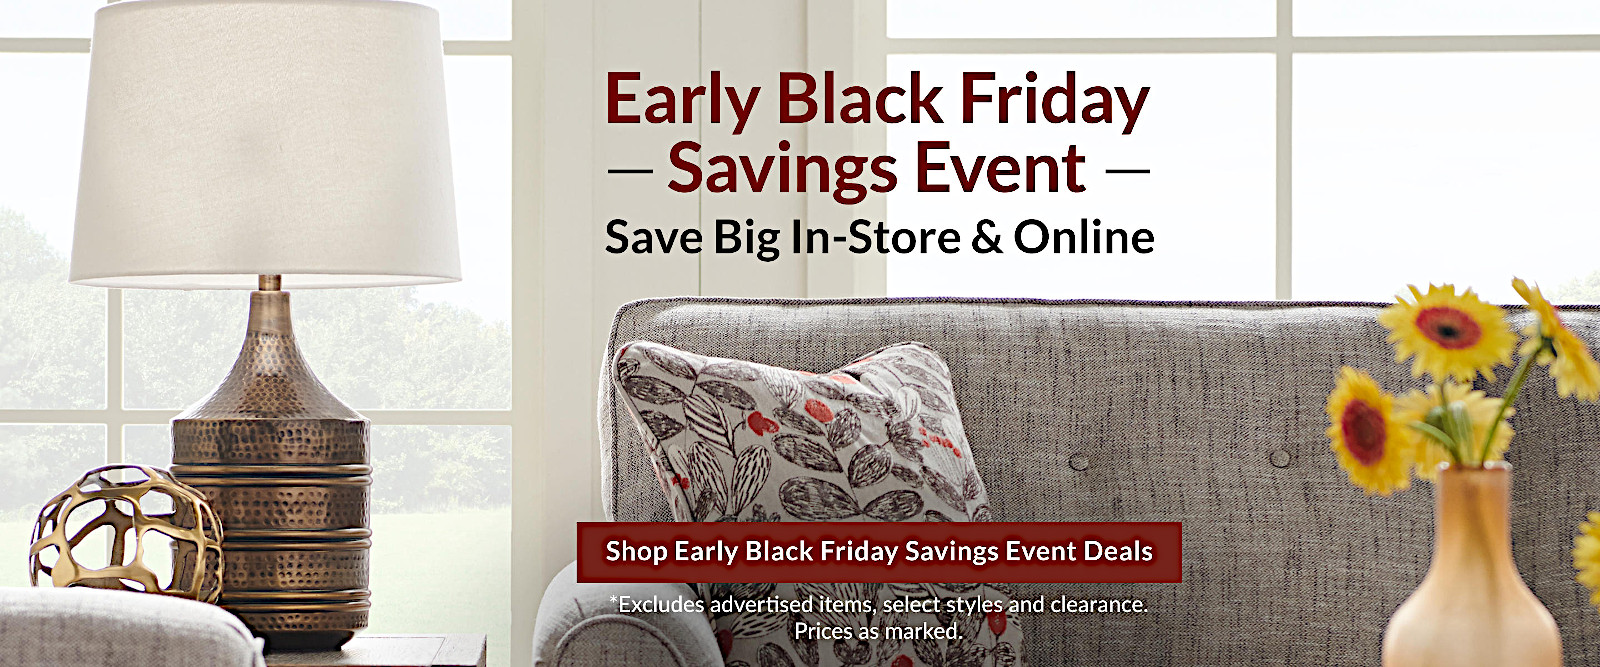 Remarkable Early Black Friday